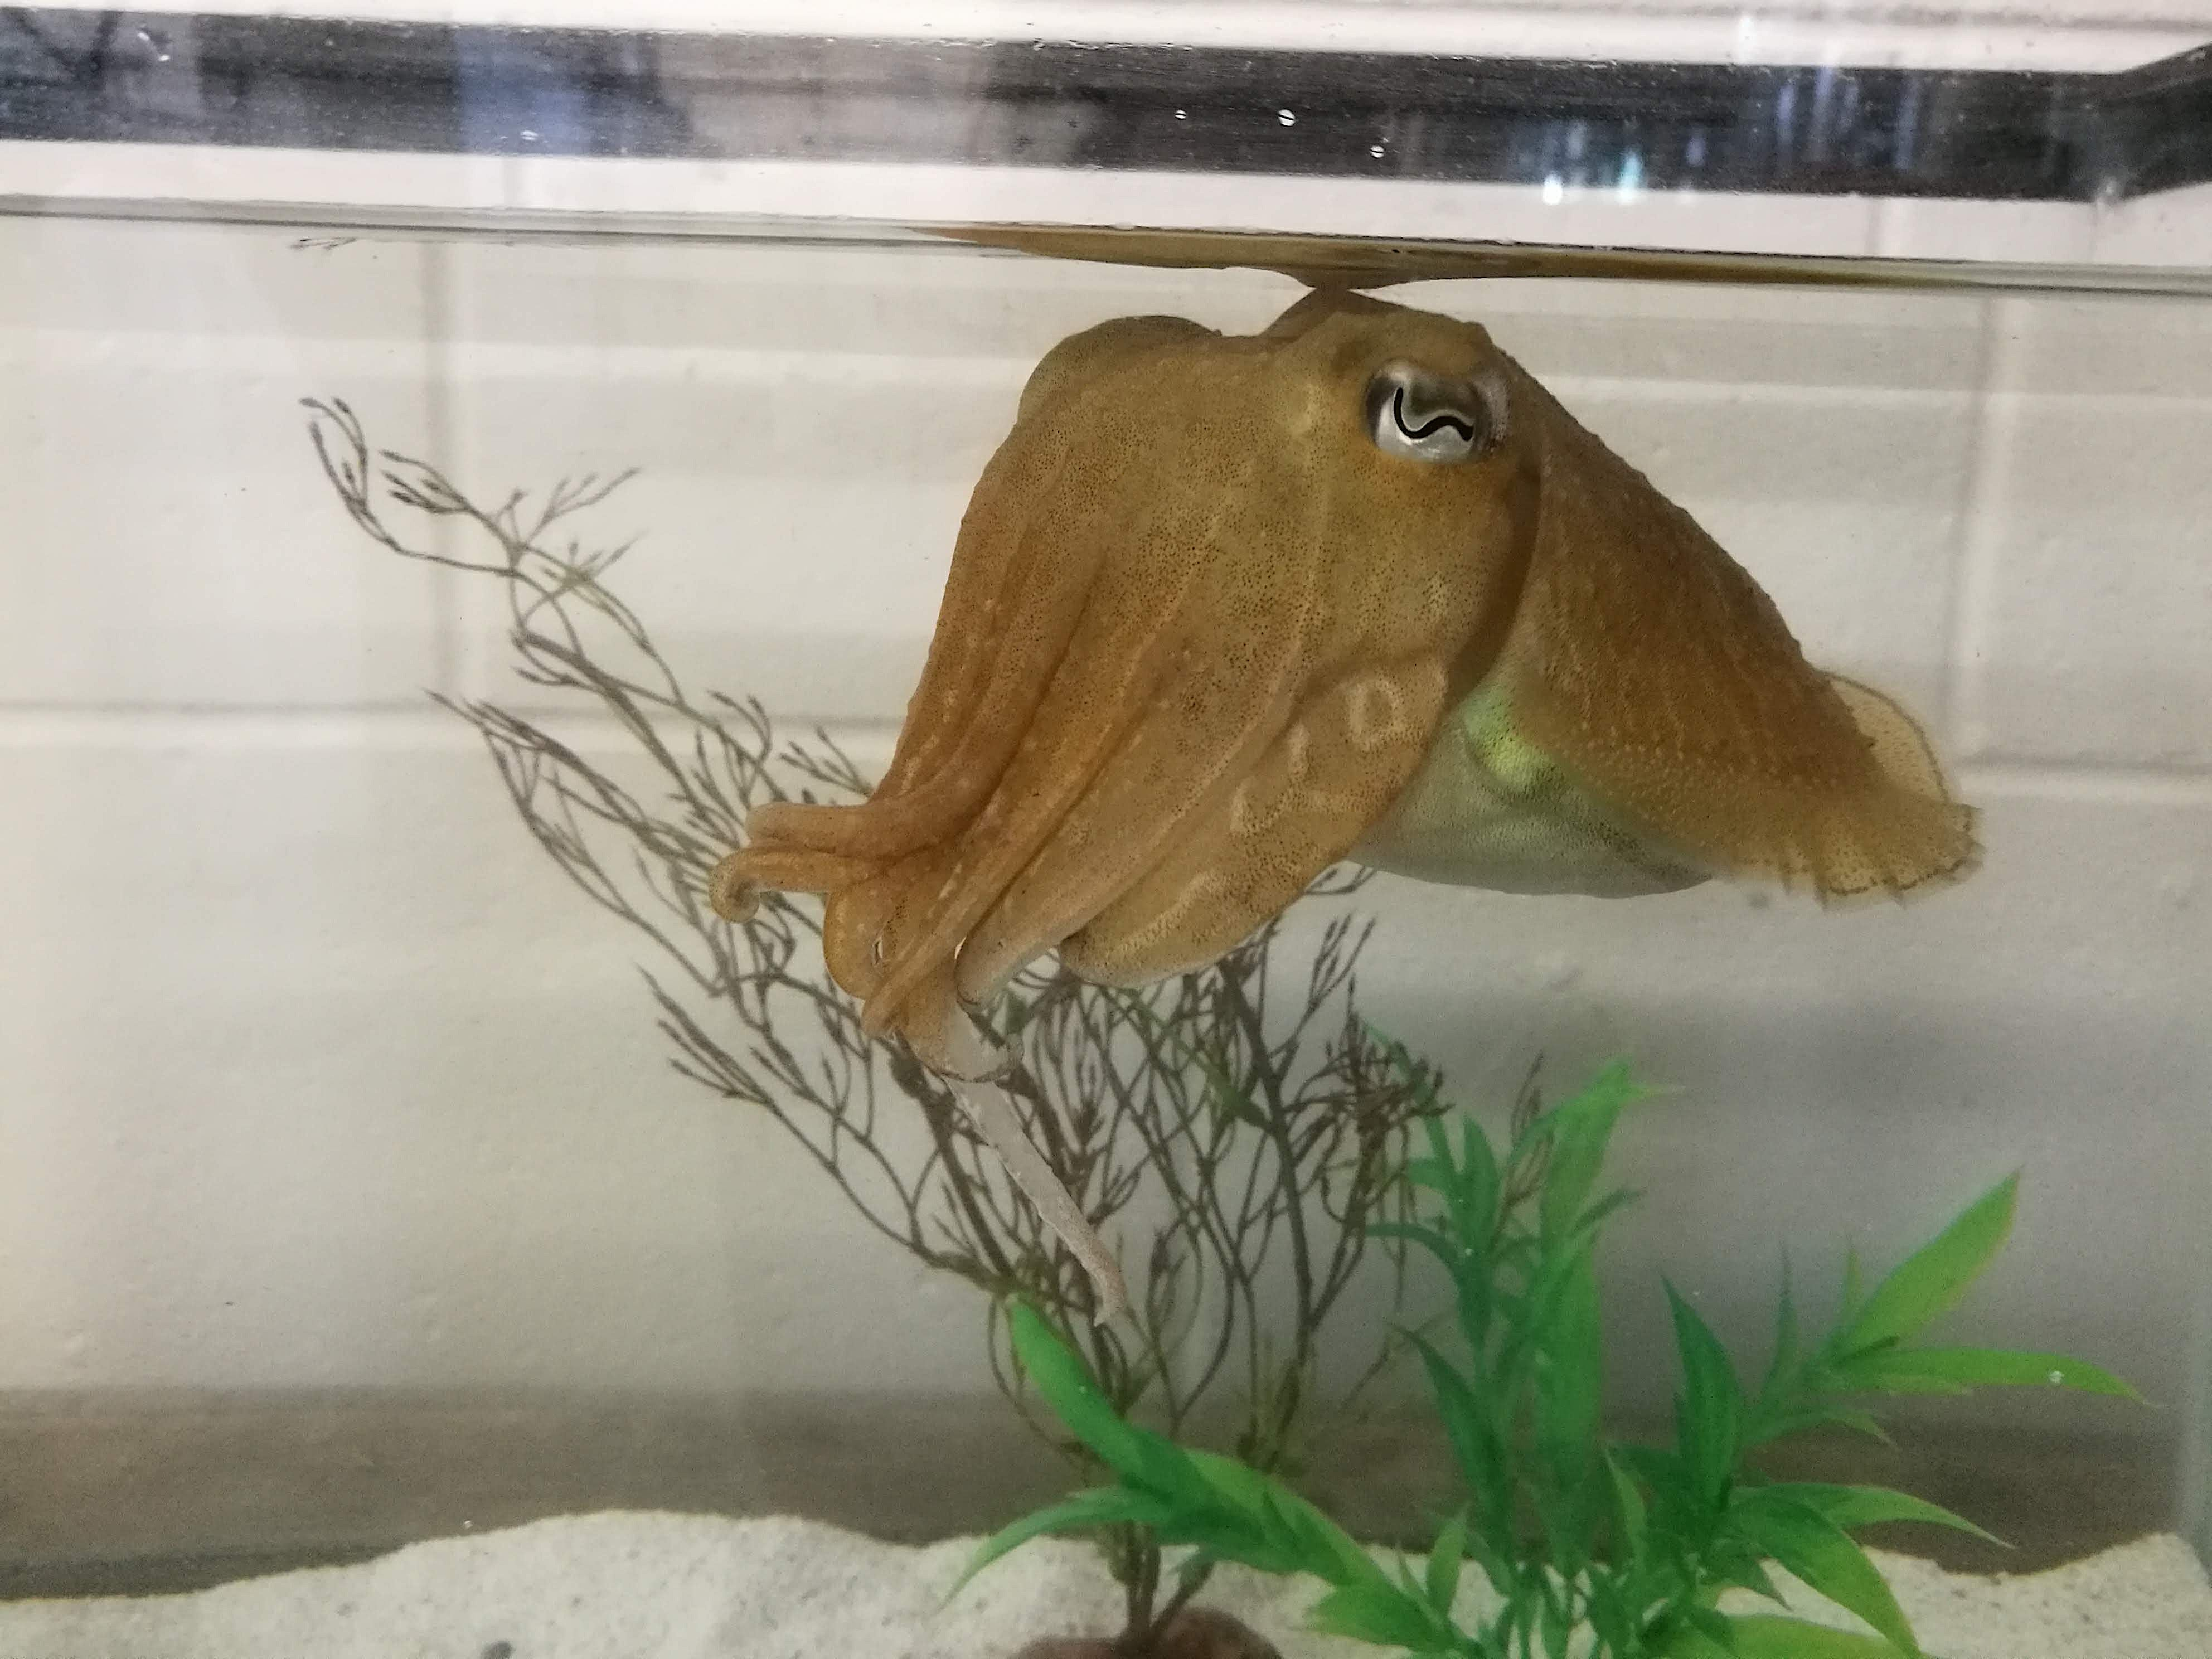 One of the six 9-month old cuttlefish that participated in the experiment.